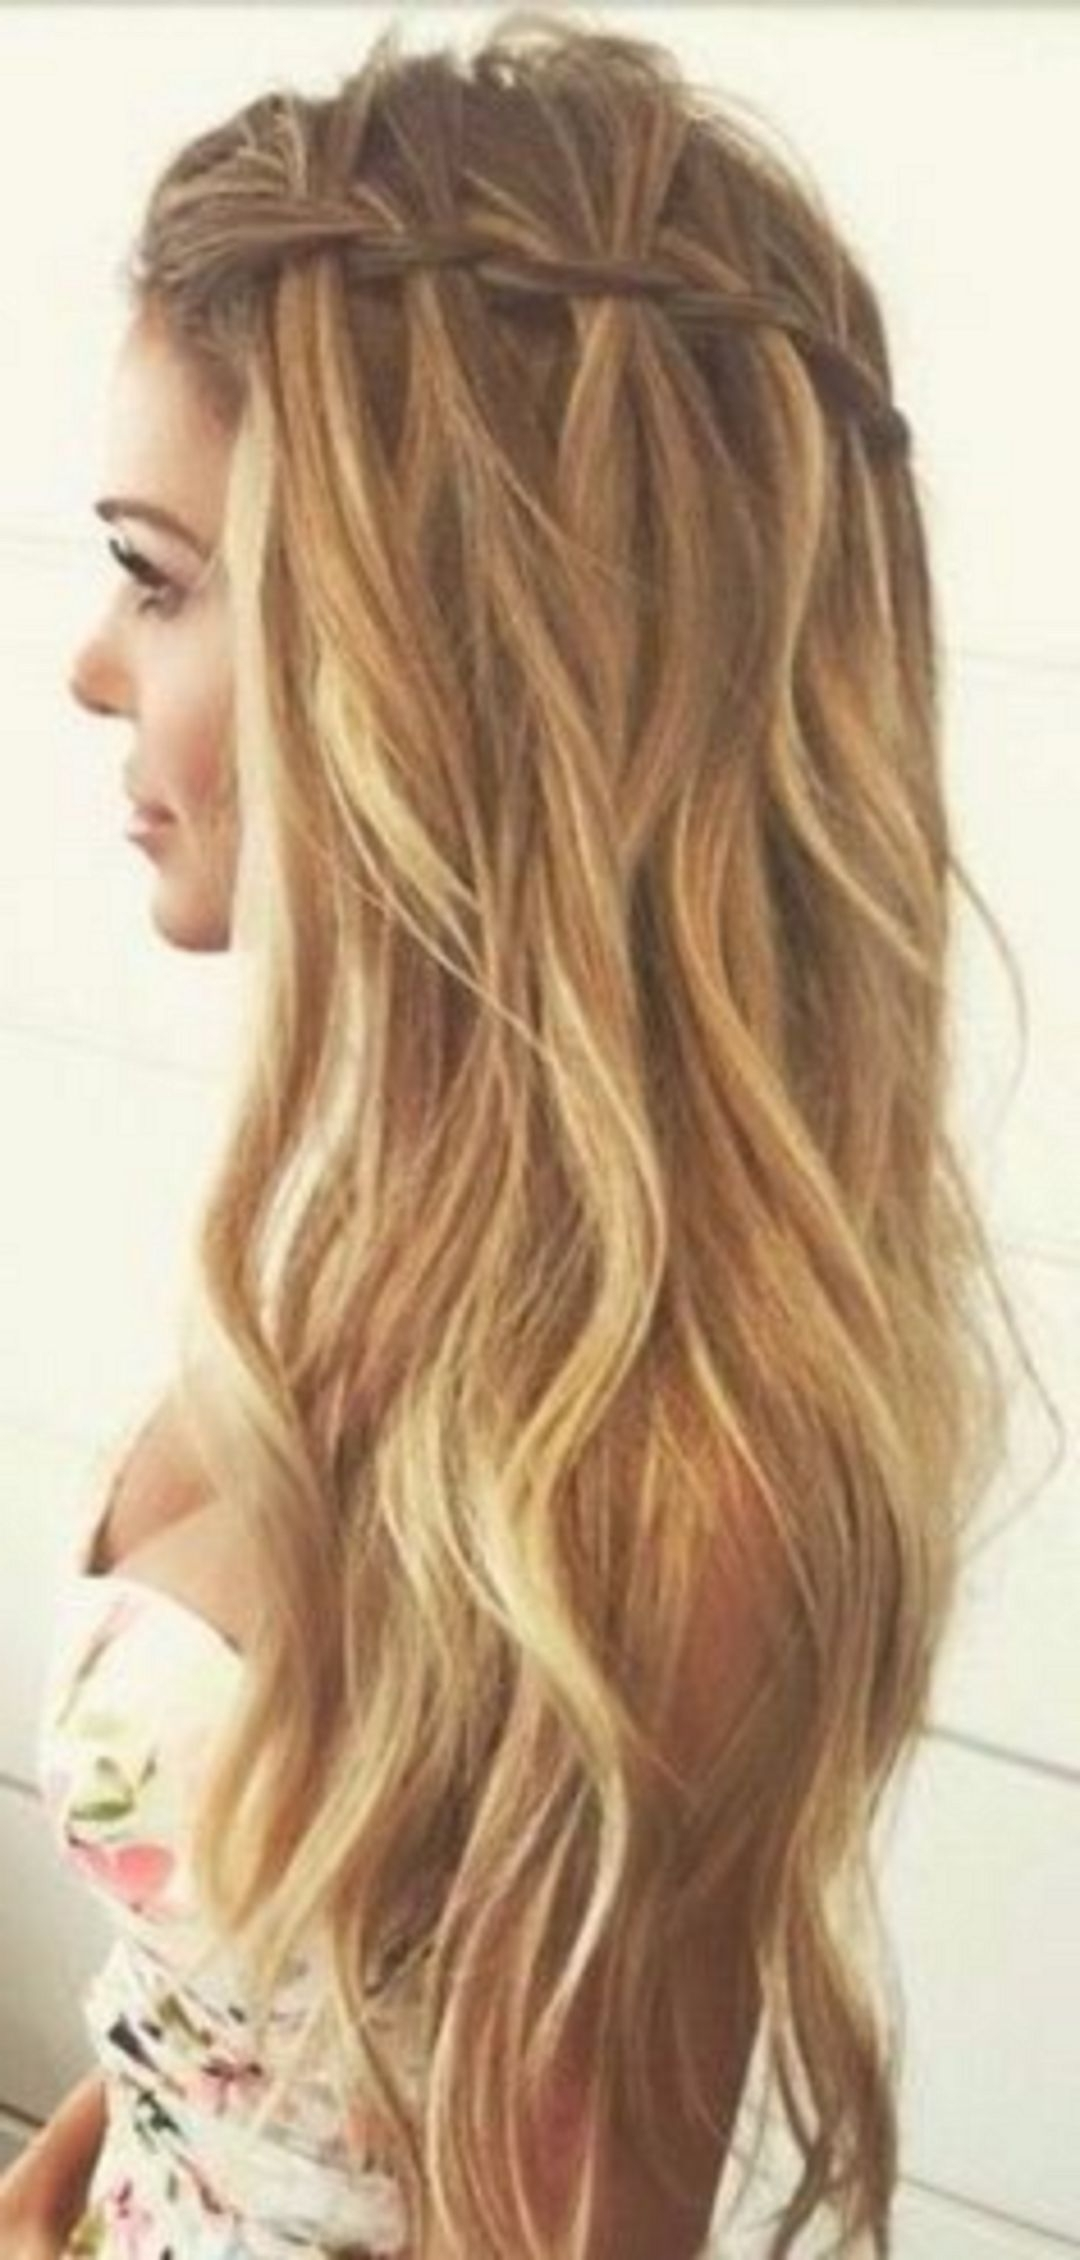 2018 Beachy Waves Hairstyles With Blonde Highlights With Beach Waves Hair You Need To Check – All For Fashions – Fashion (View 2 of 20)